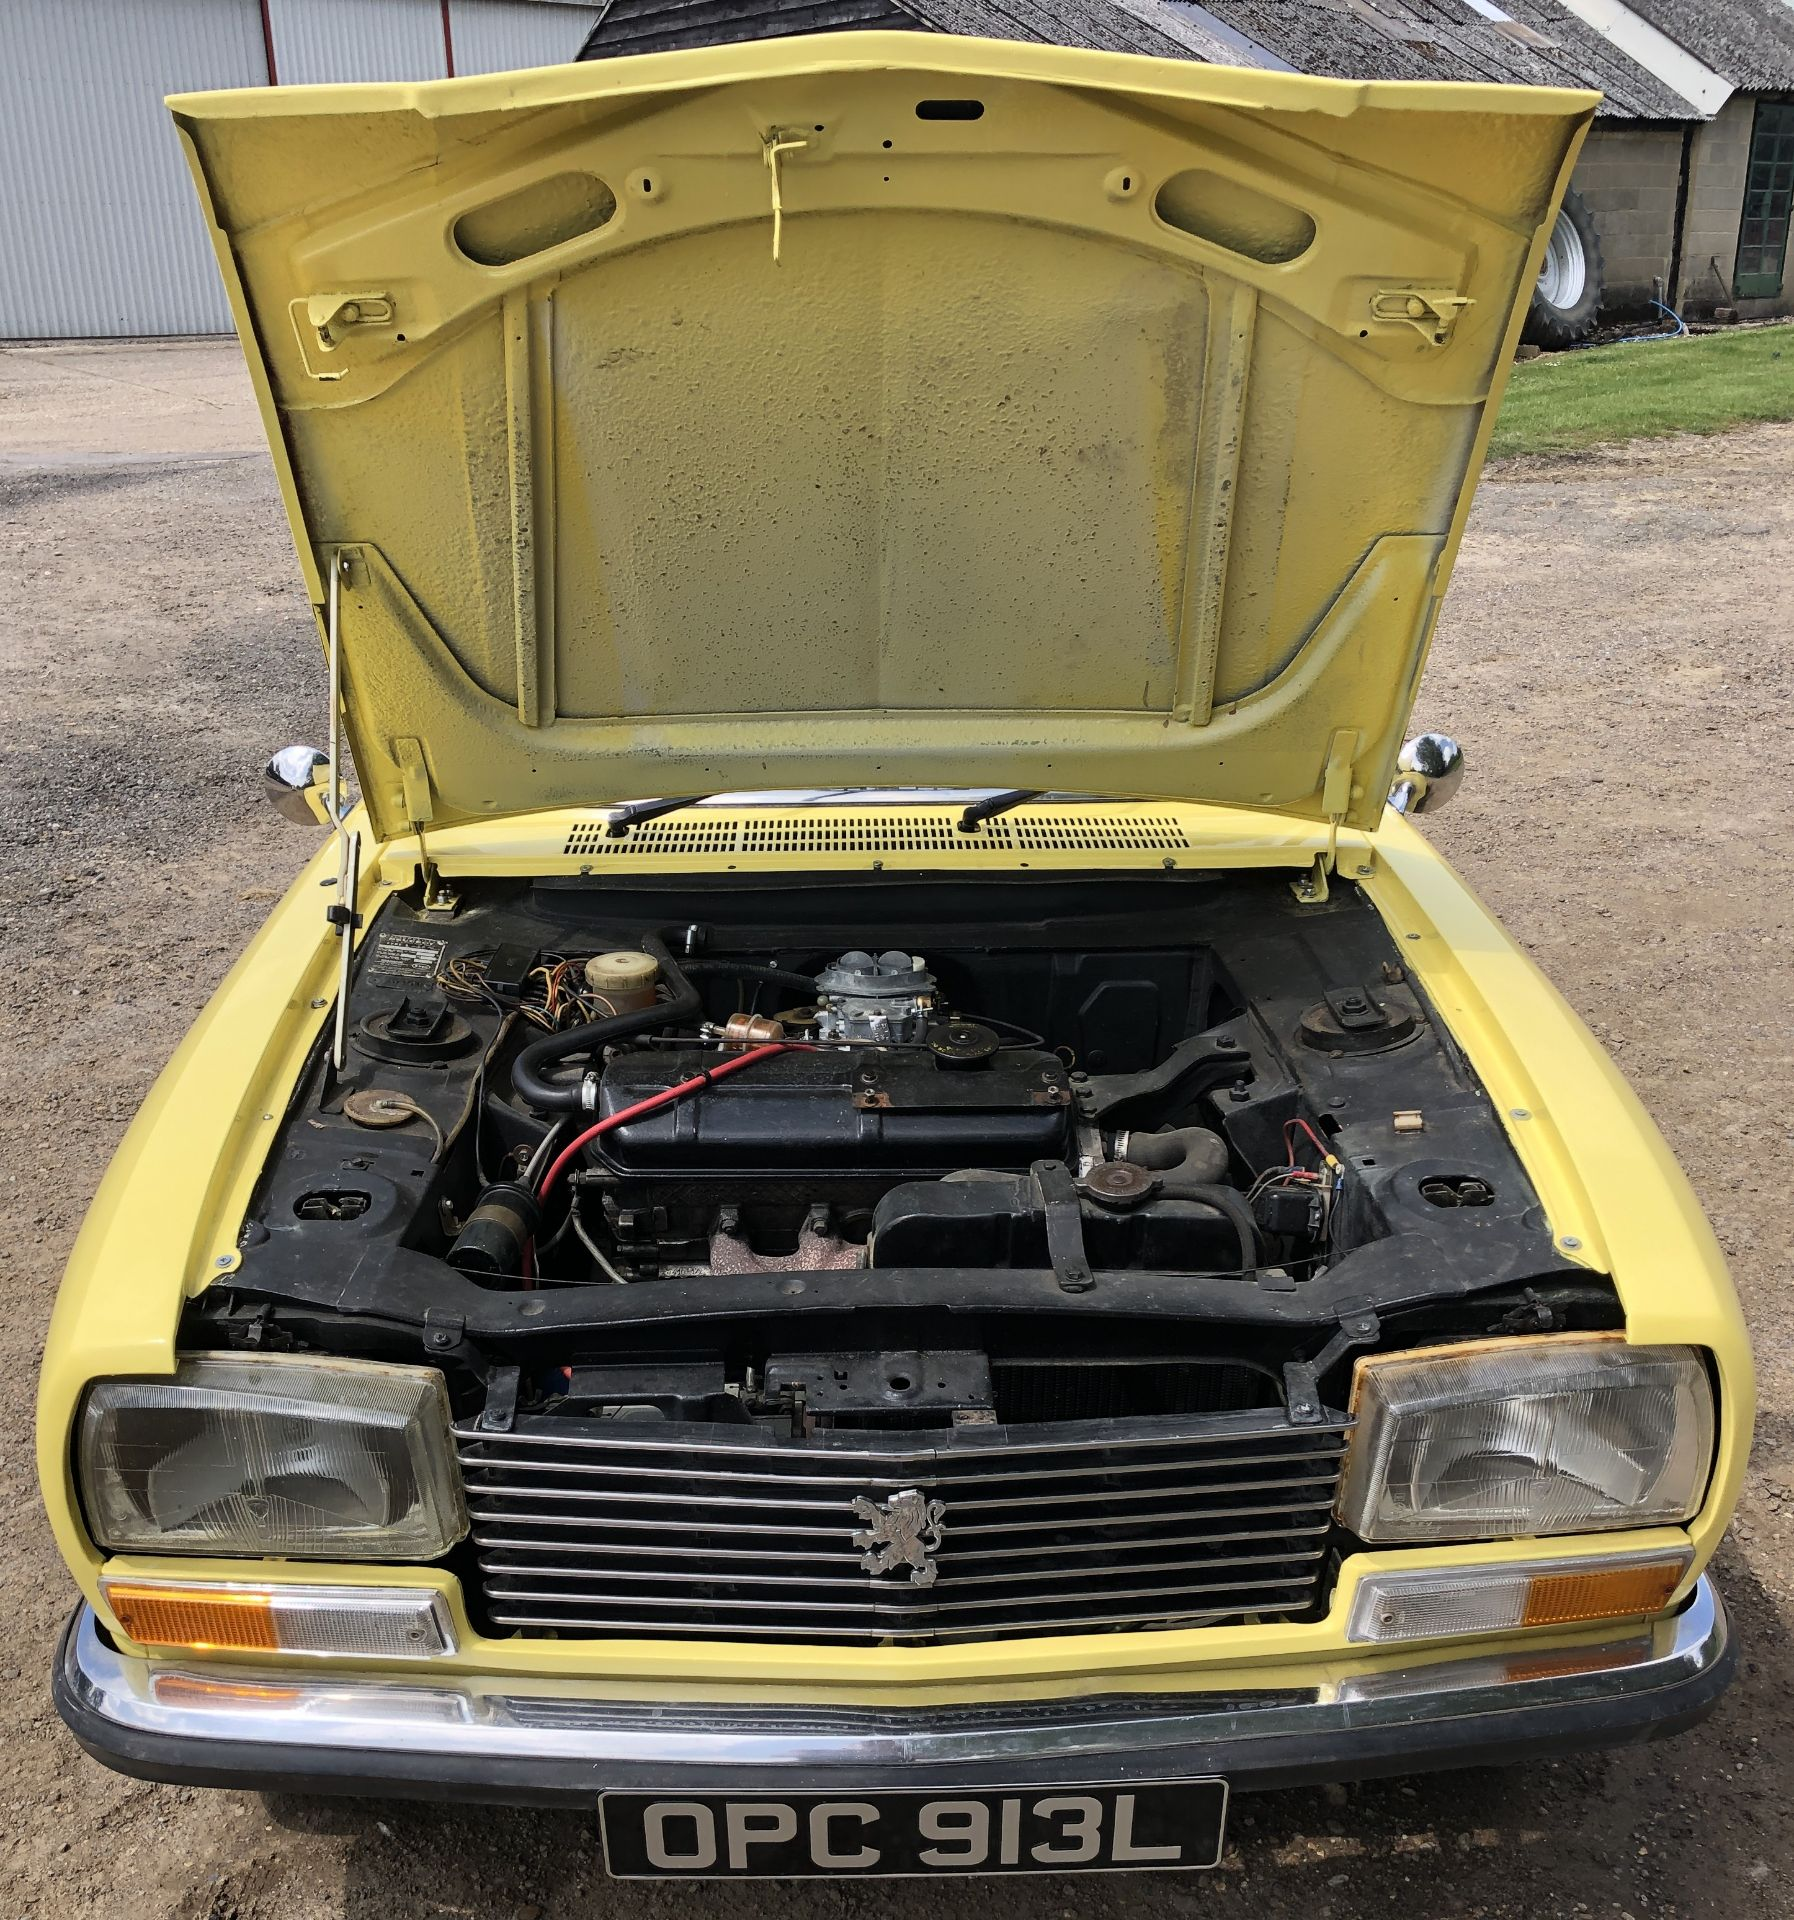 Rare Right Hand Drive Peugeot 304 Convertible, Registration OPC 913L, First Registered 2nd - Image 43 of 48